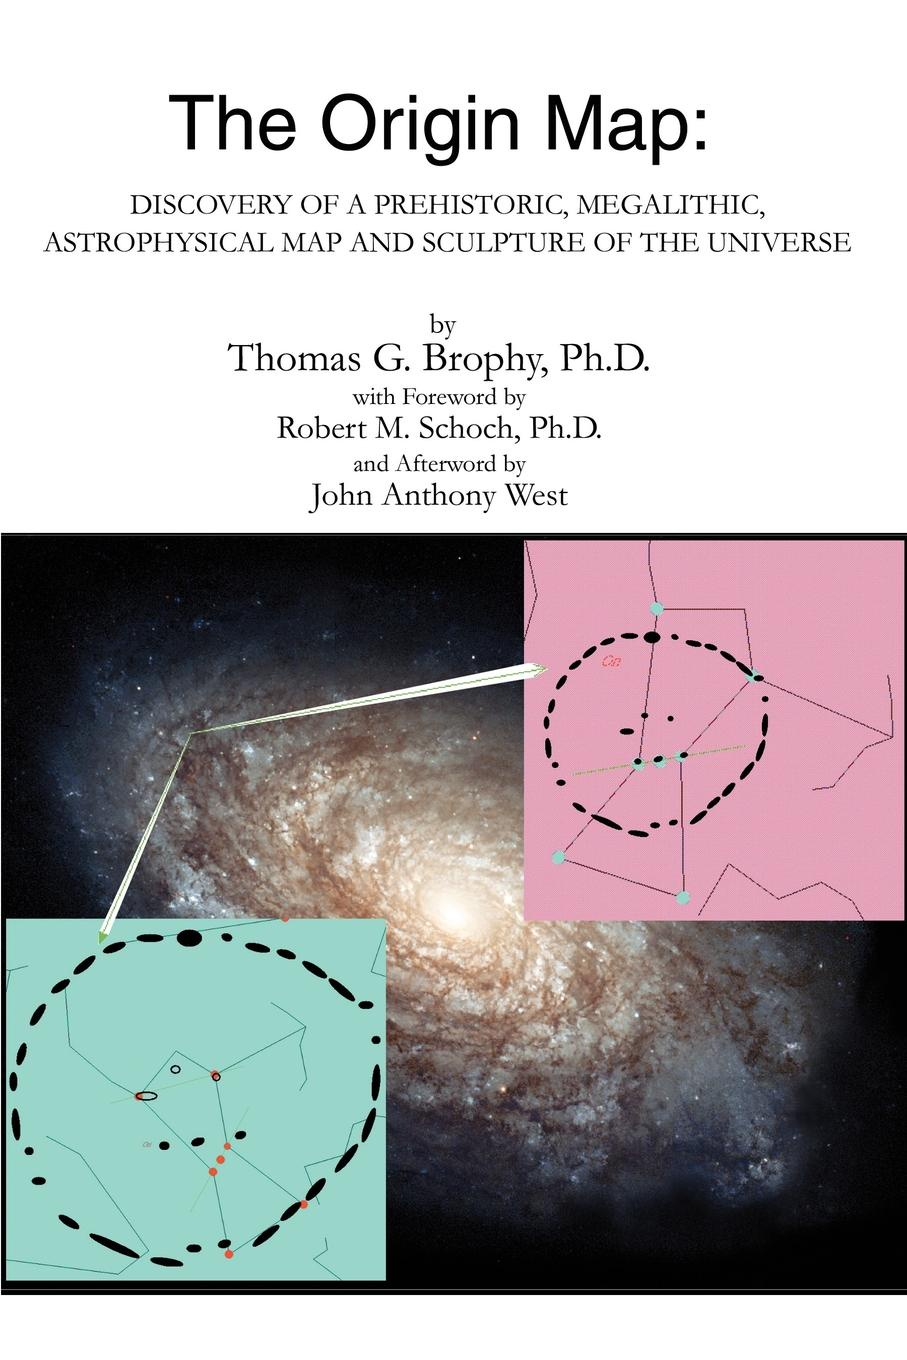 Thomas G. Brophy The Origin Map. Discovery of a Prehistoric, Megalithic, Astrophysical Map and Sculpture of the Universe felix j palma the map of time and the turn of the screw